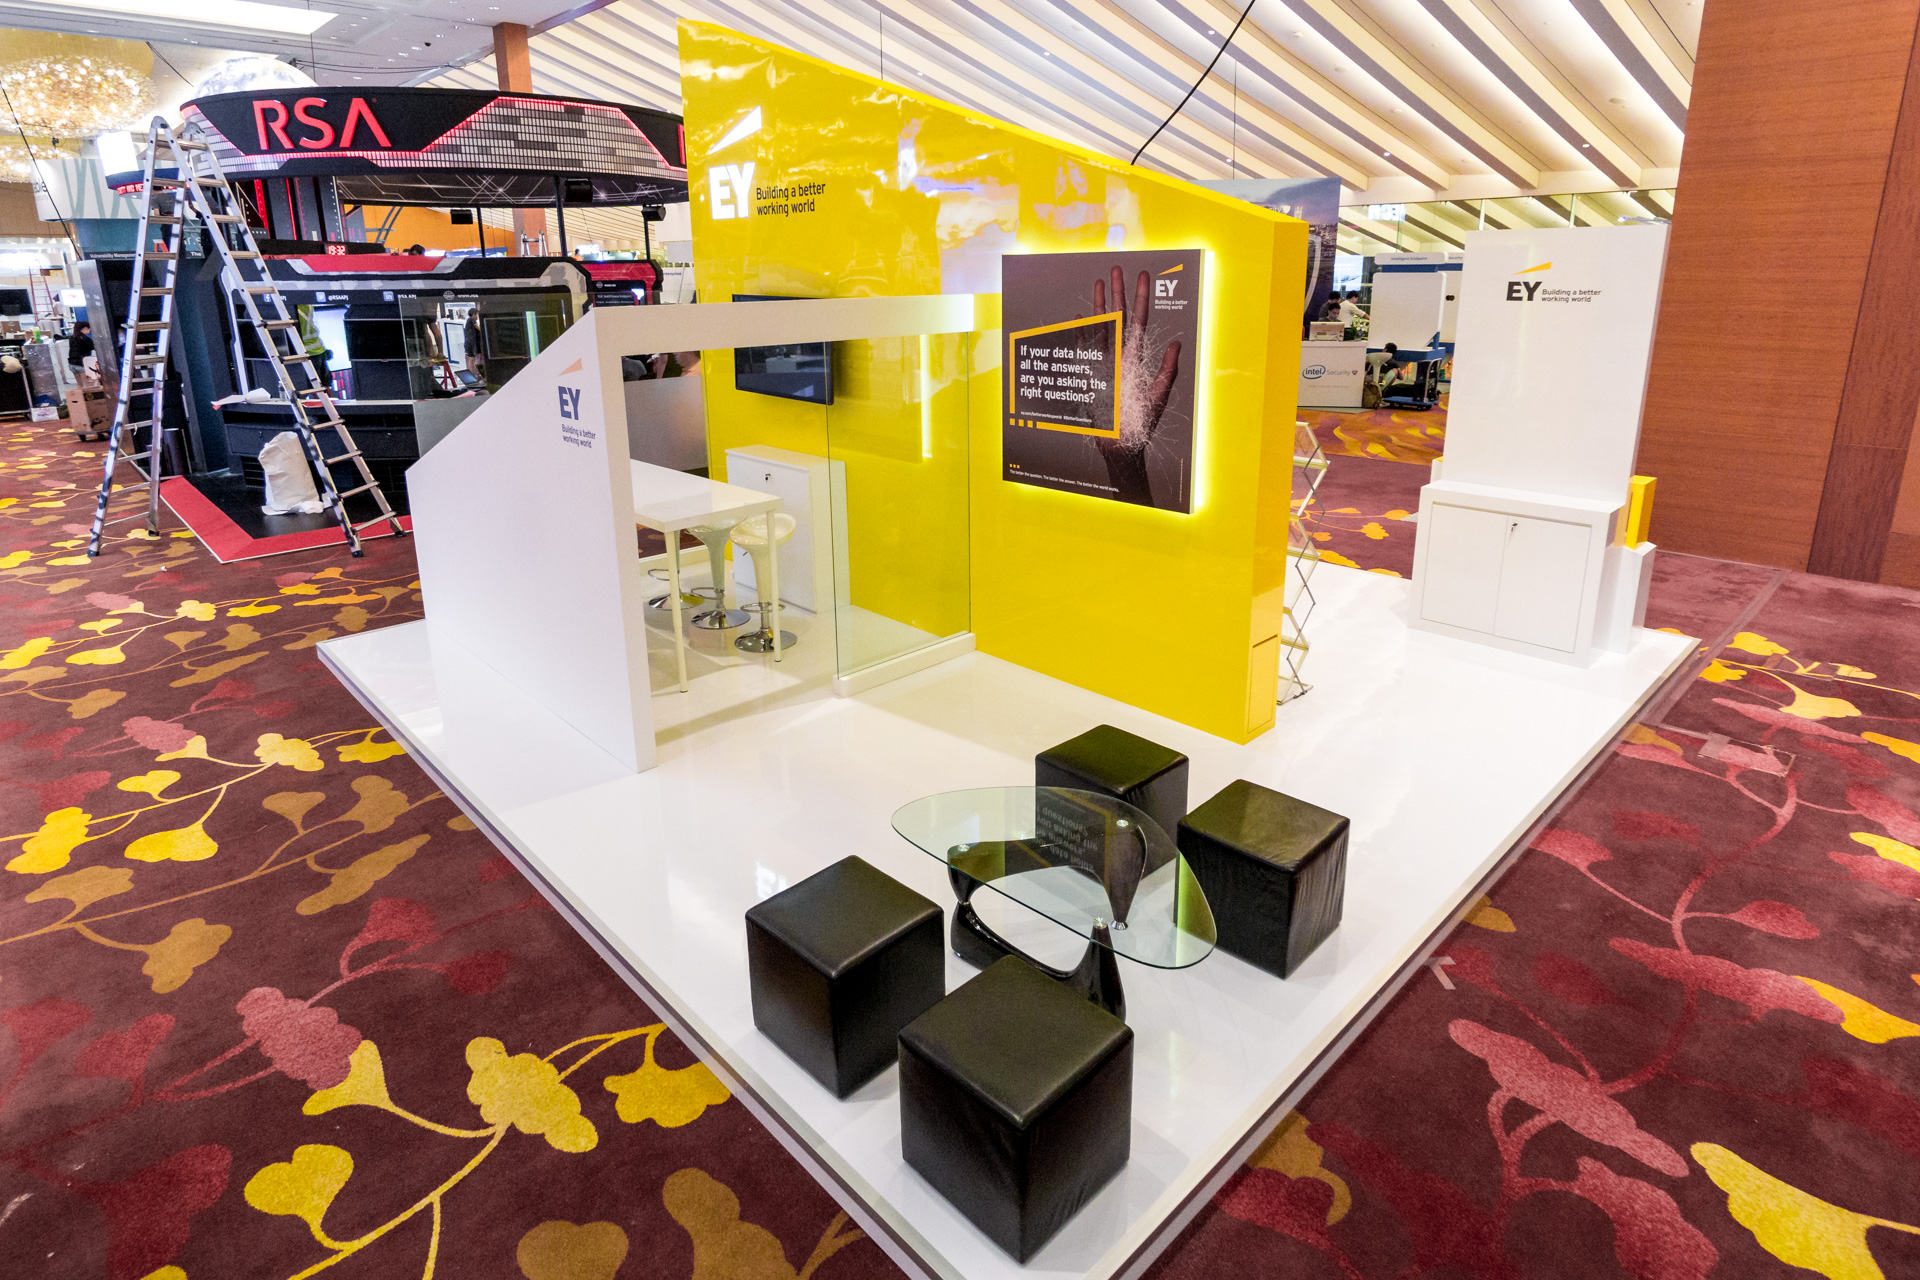 exhibition-stand-design-punktlandung-ey-booth-002